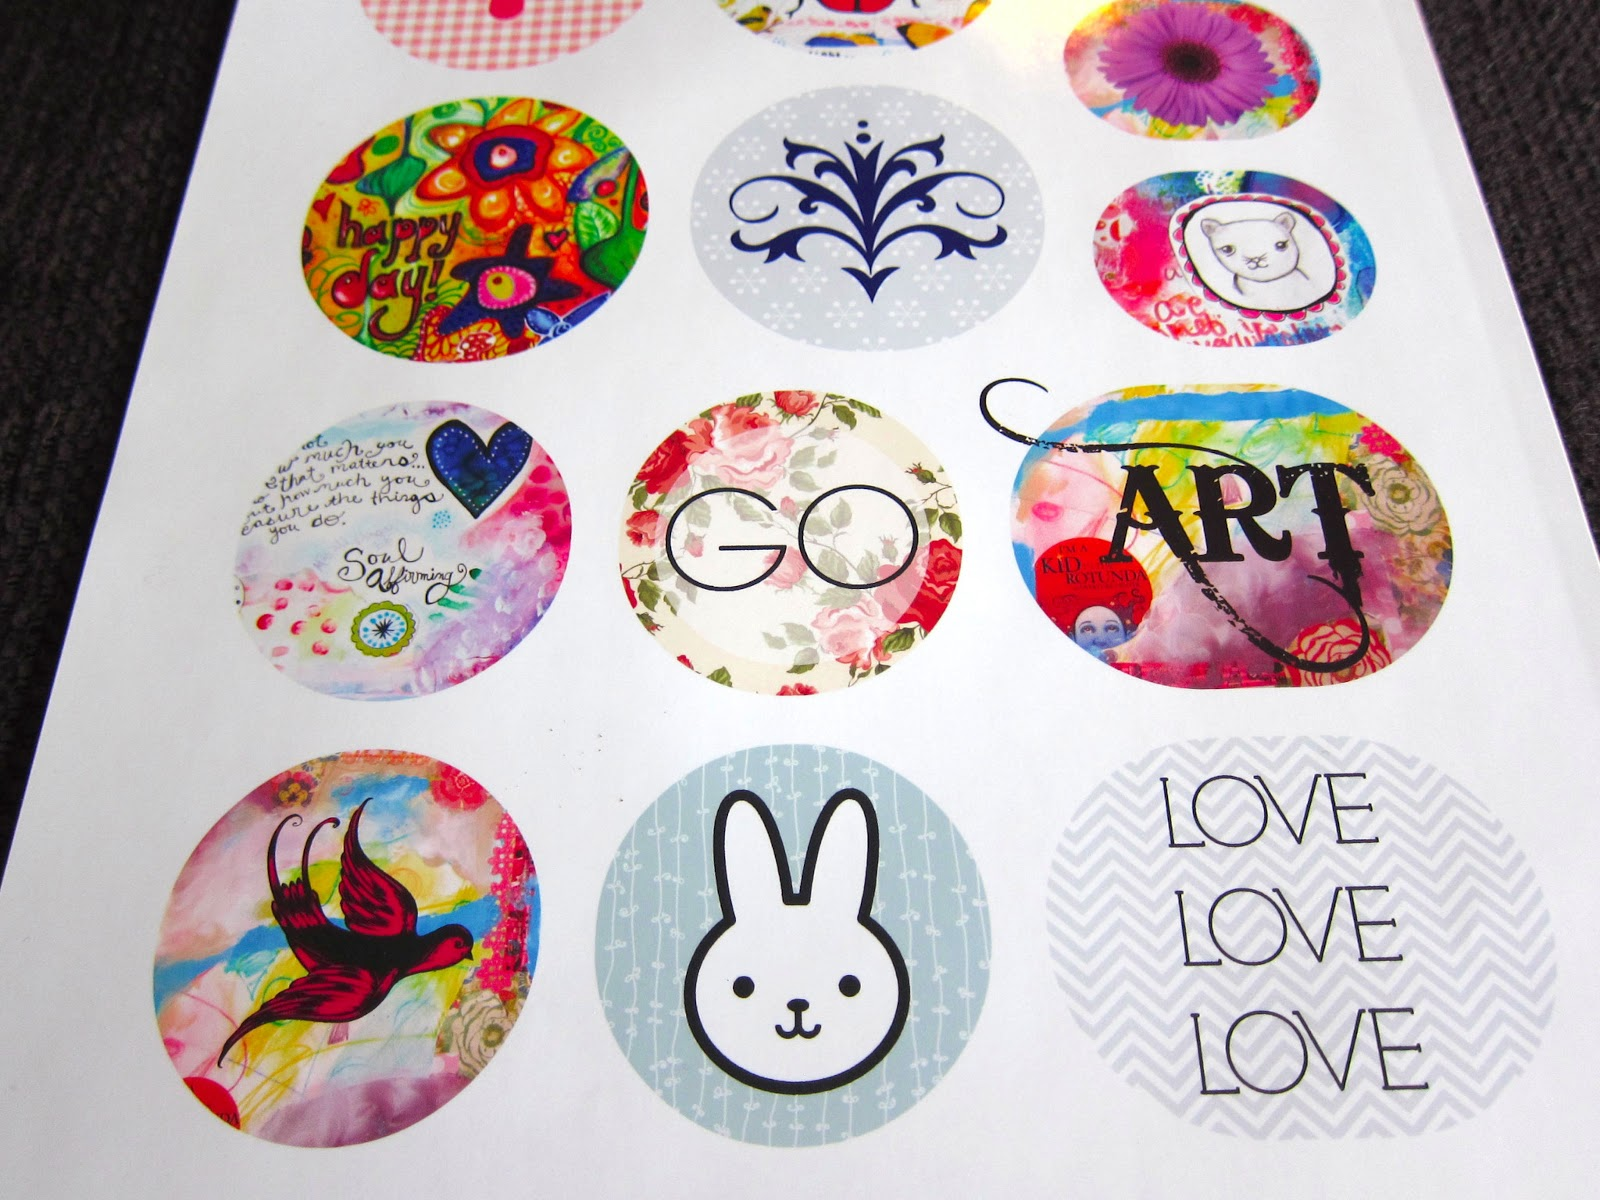 How to print your own stickers using picmonkey marcia beckett